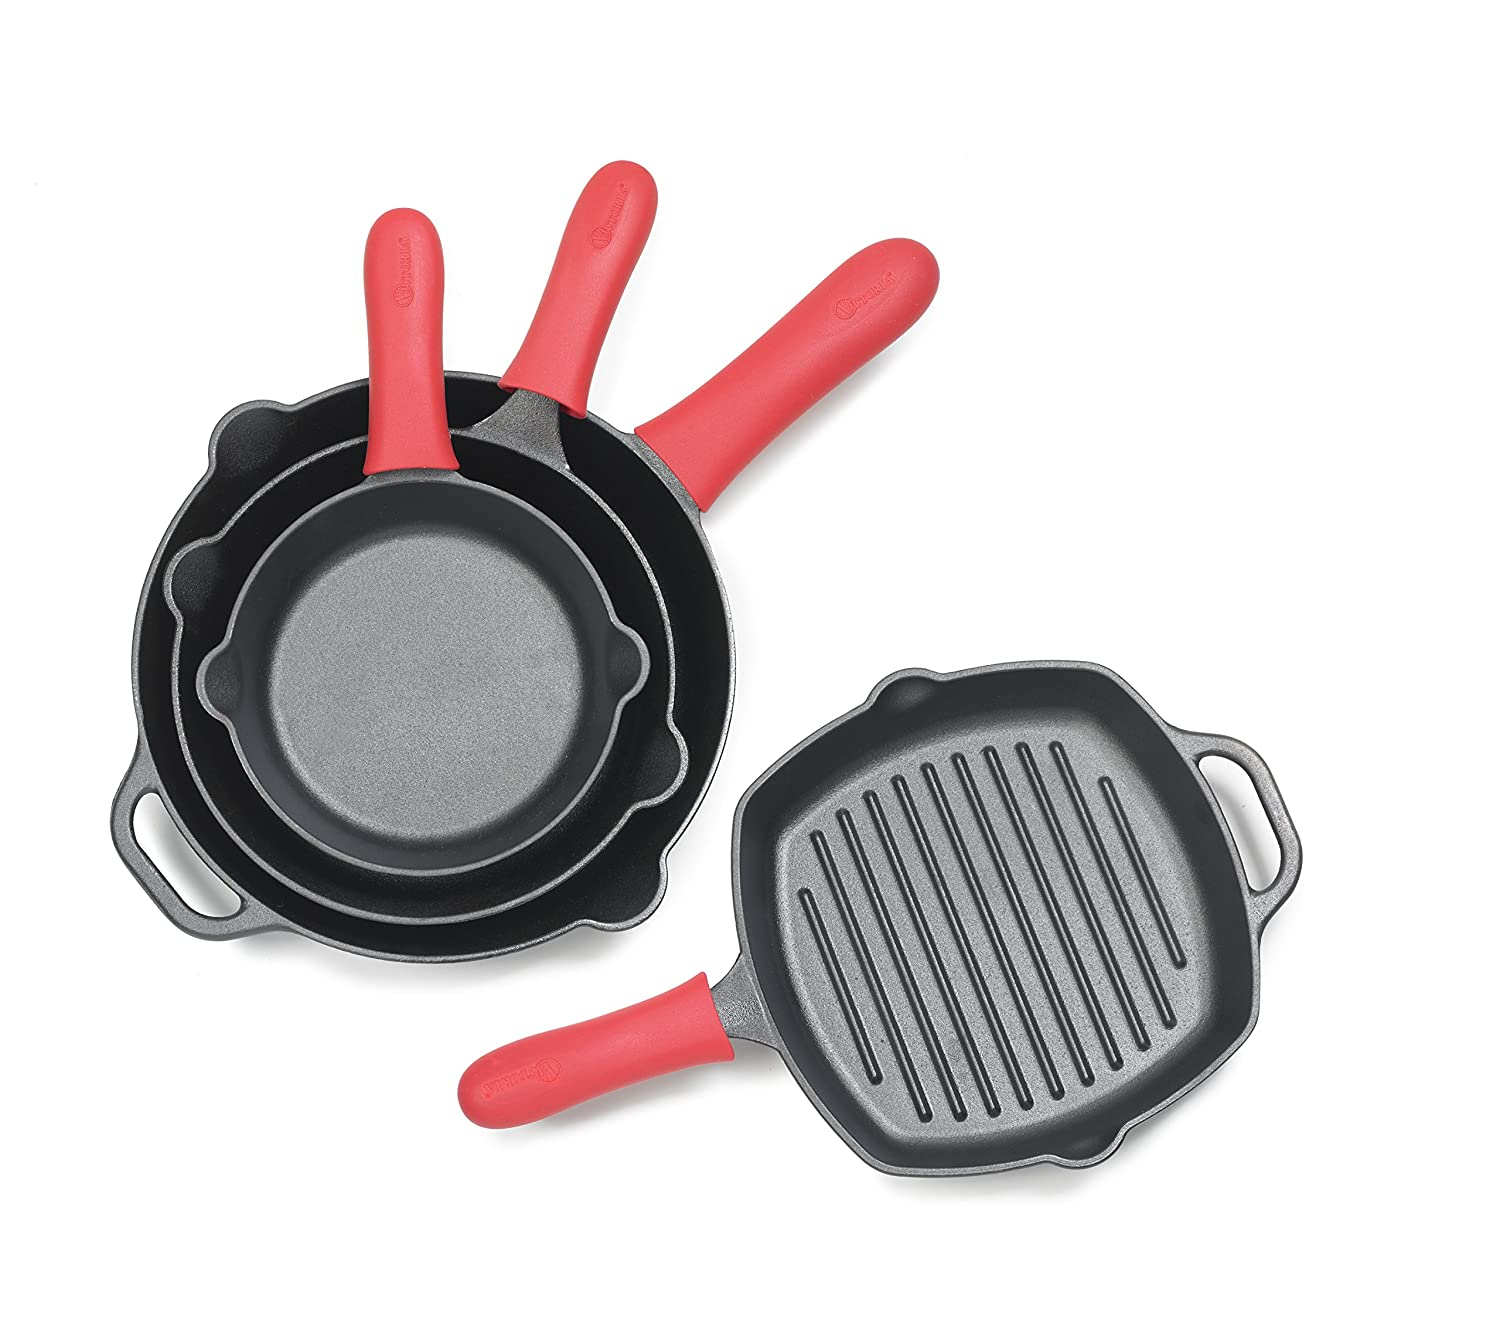 Victoria Silicone Handle Holder for Victoria Skillets GDL-186 SKL-200 SKL-210 SKL-218 and SKL-212, ACC-498, Large, Red ACC-503